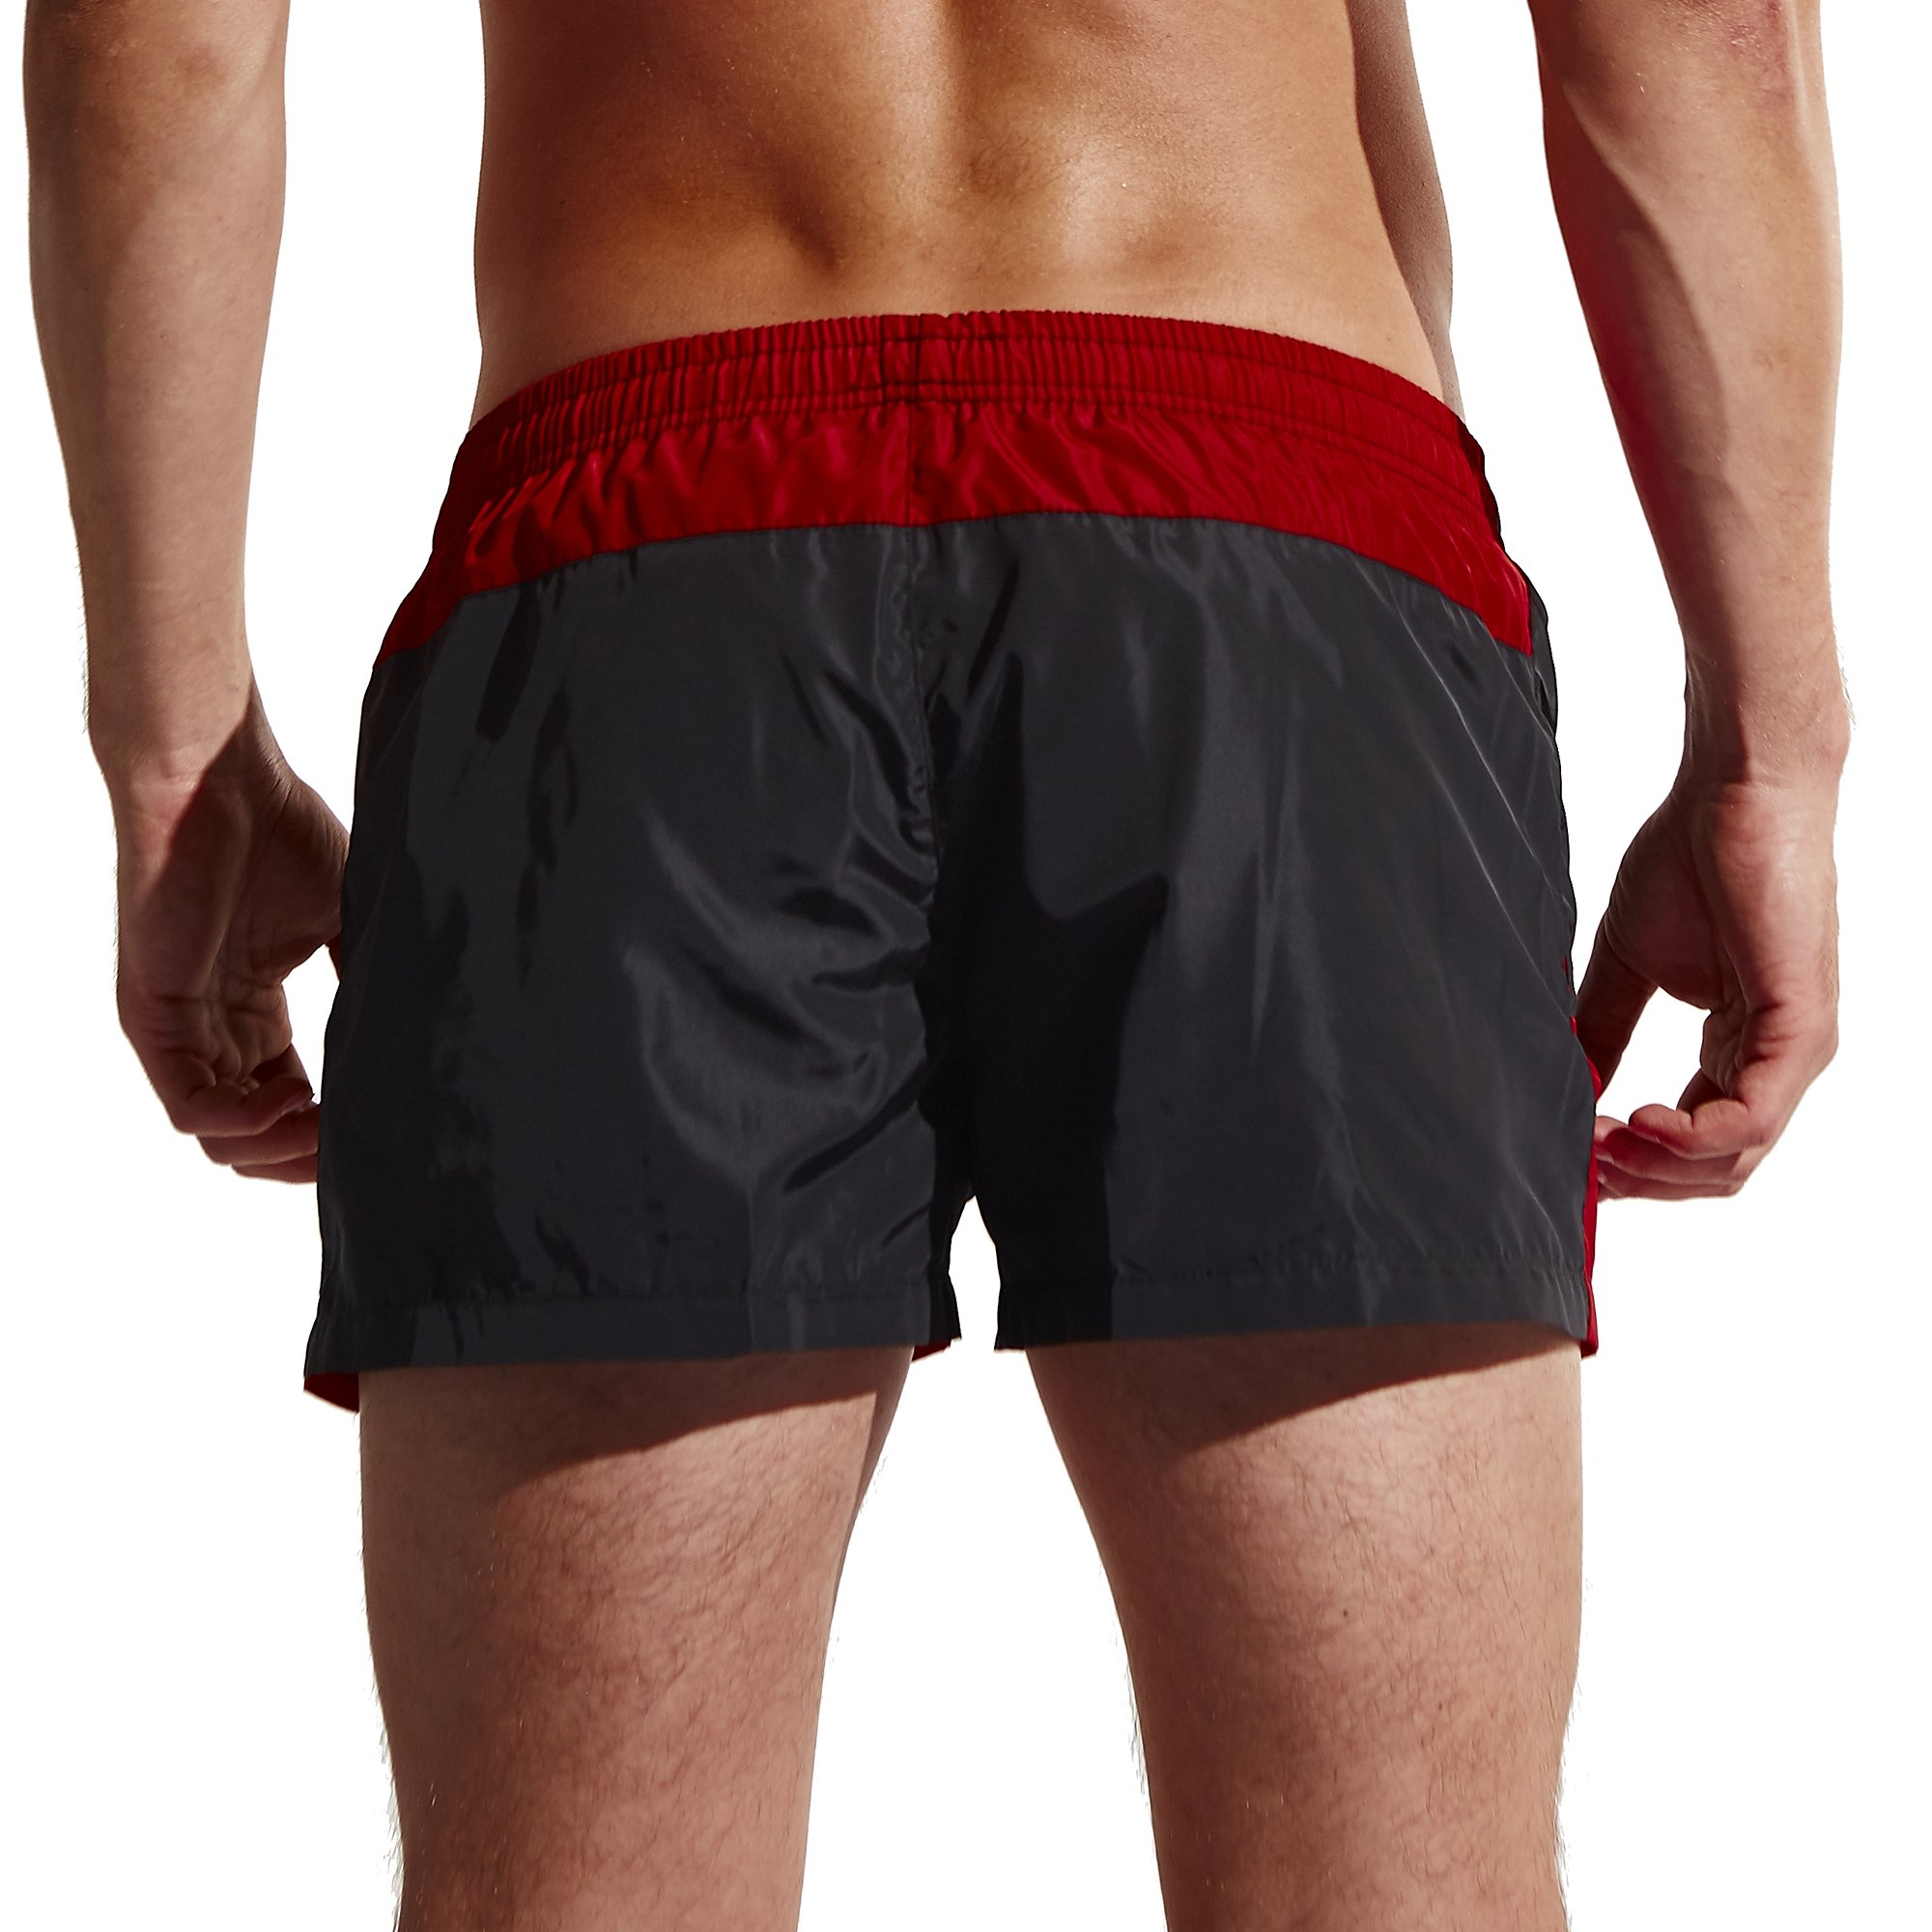 Men\'s Shorts Dry Fit Swim Trunks Running Board/Beach Shorts with Zip Pockets